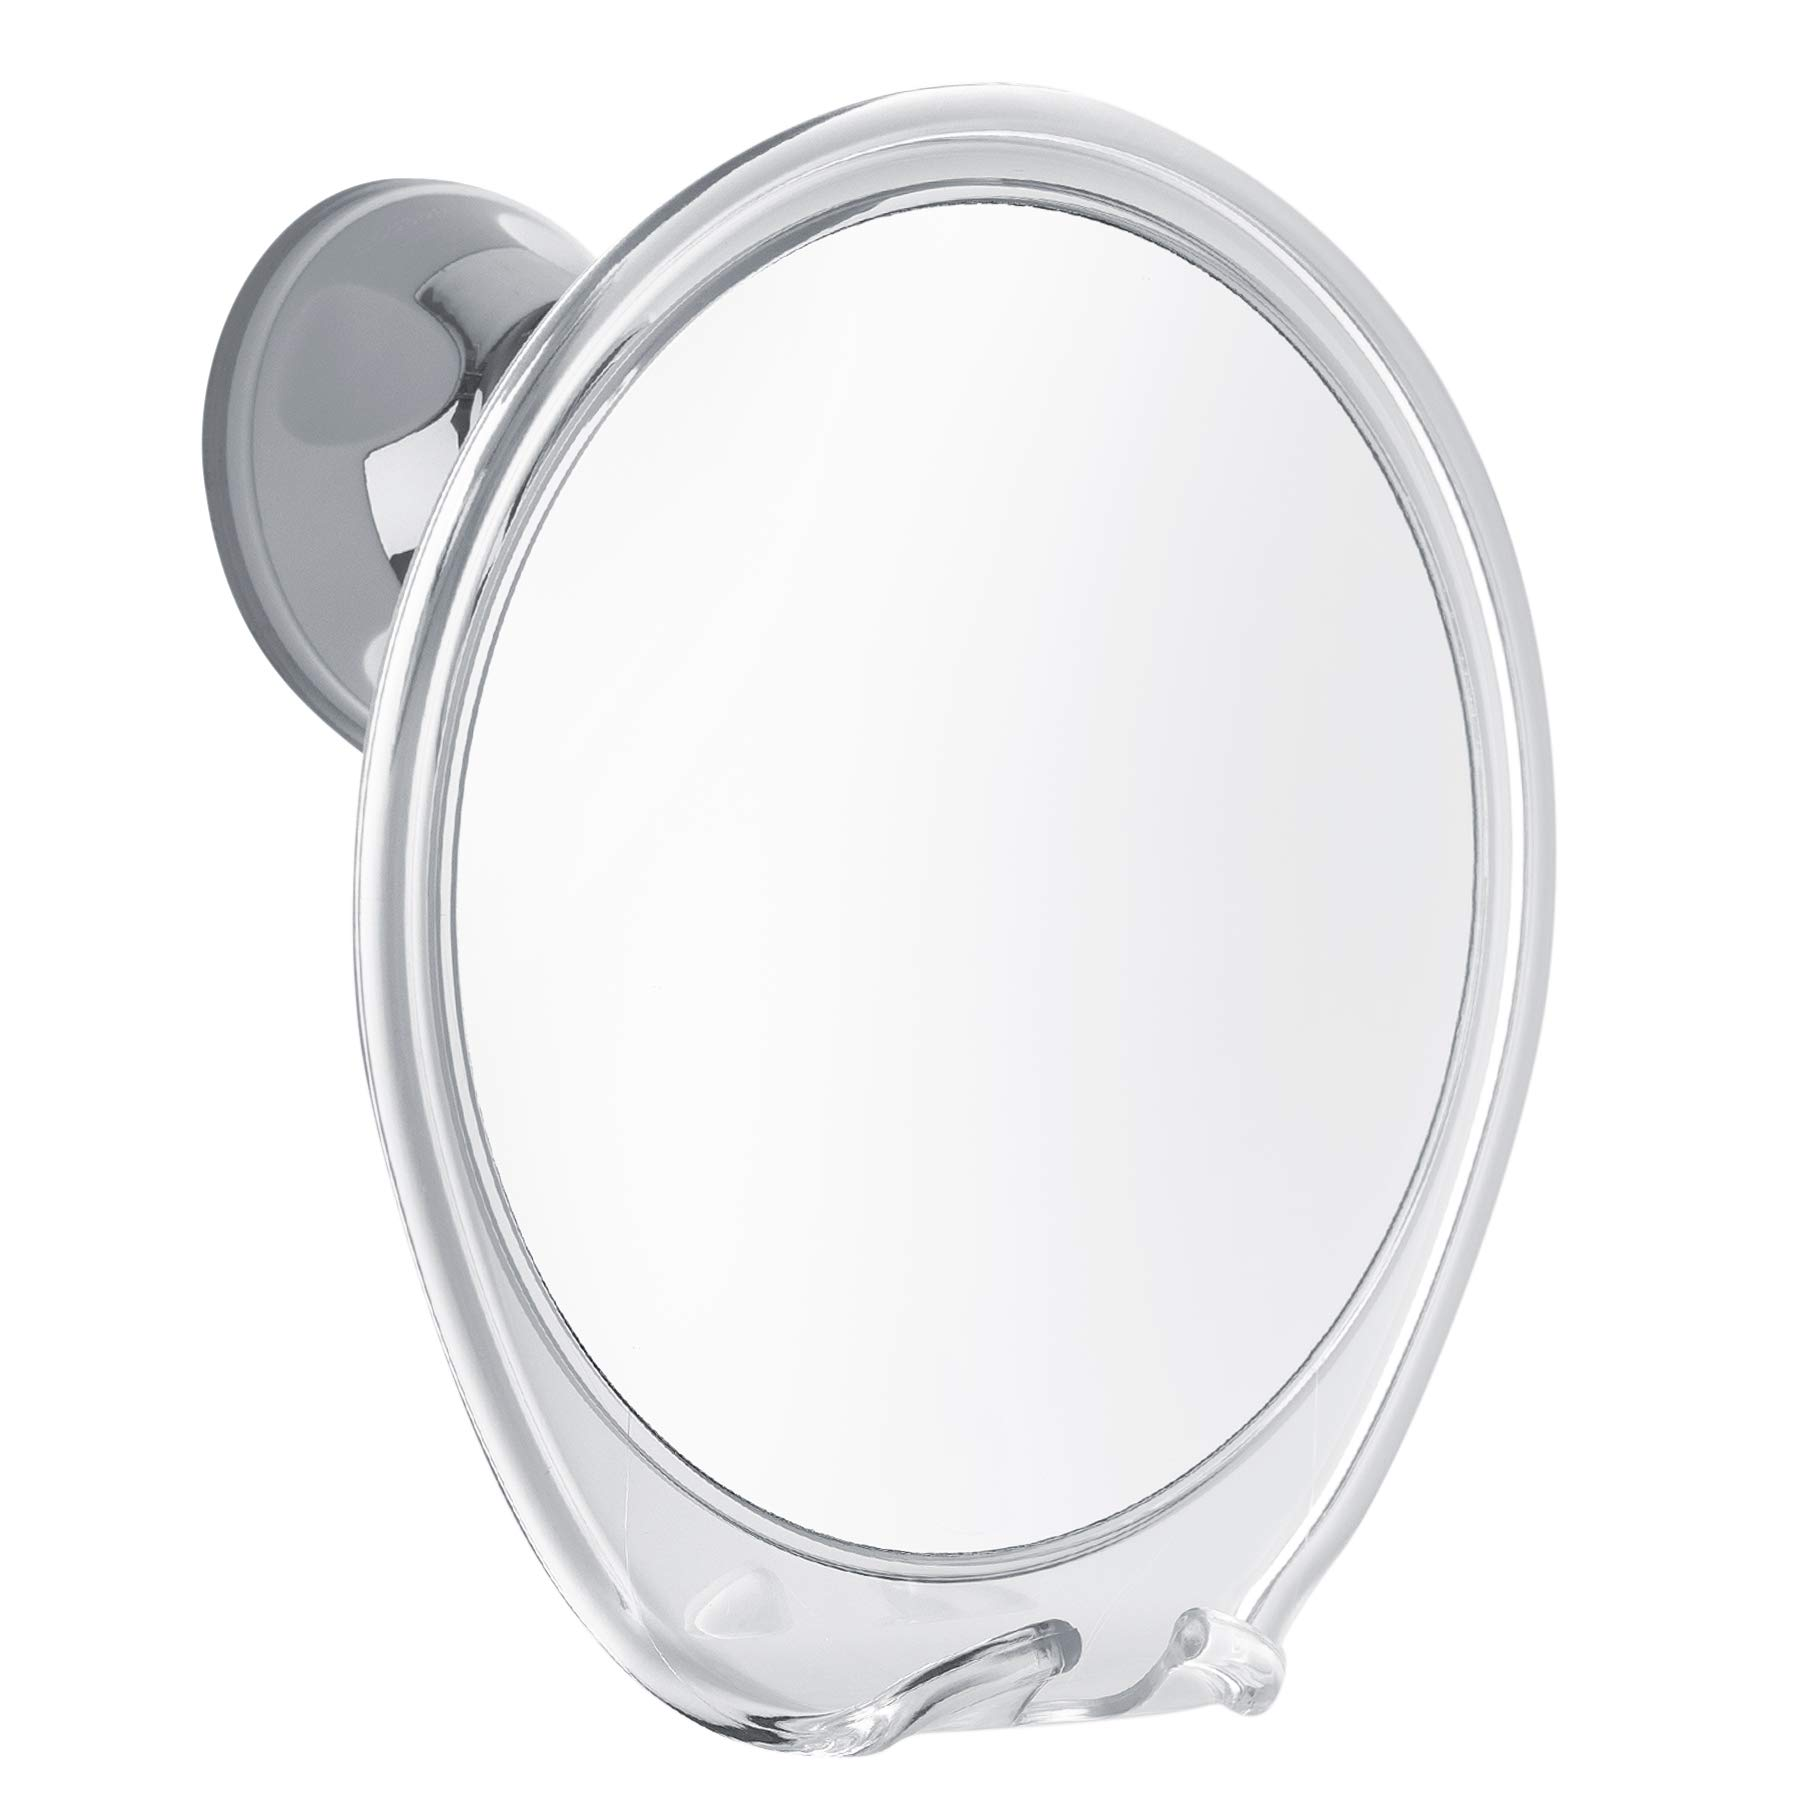 Fogless Shower Mirror with Razor Hook for A Perfect No Fog Shaving, 360 Degree Rotating for Easy Mirrors Viewing, Strong Power Lock Suction Cup Will Not Fall, Ideal for Home and Traveling. by ProBeautify